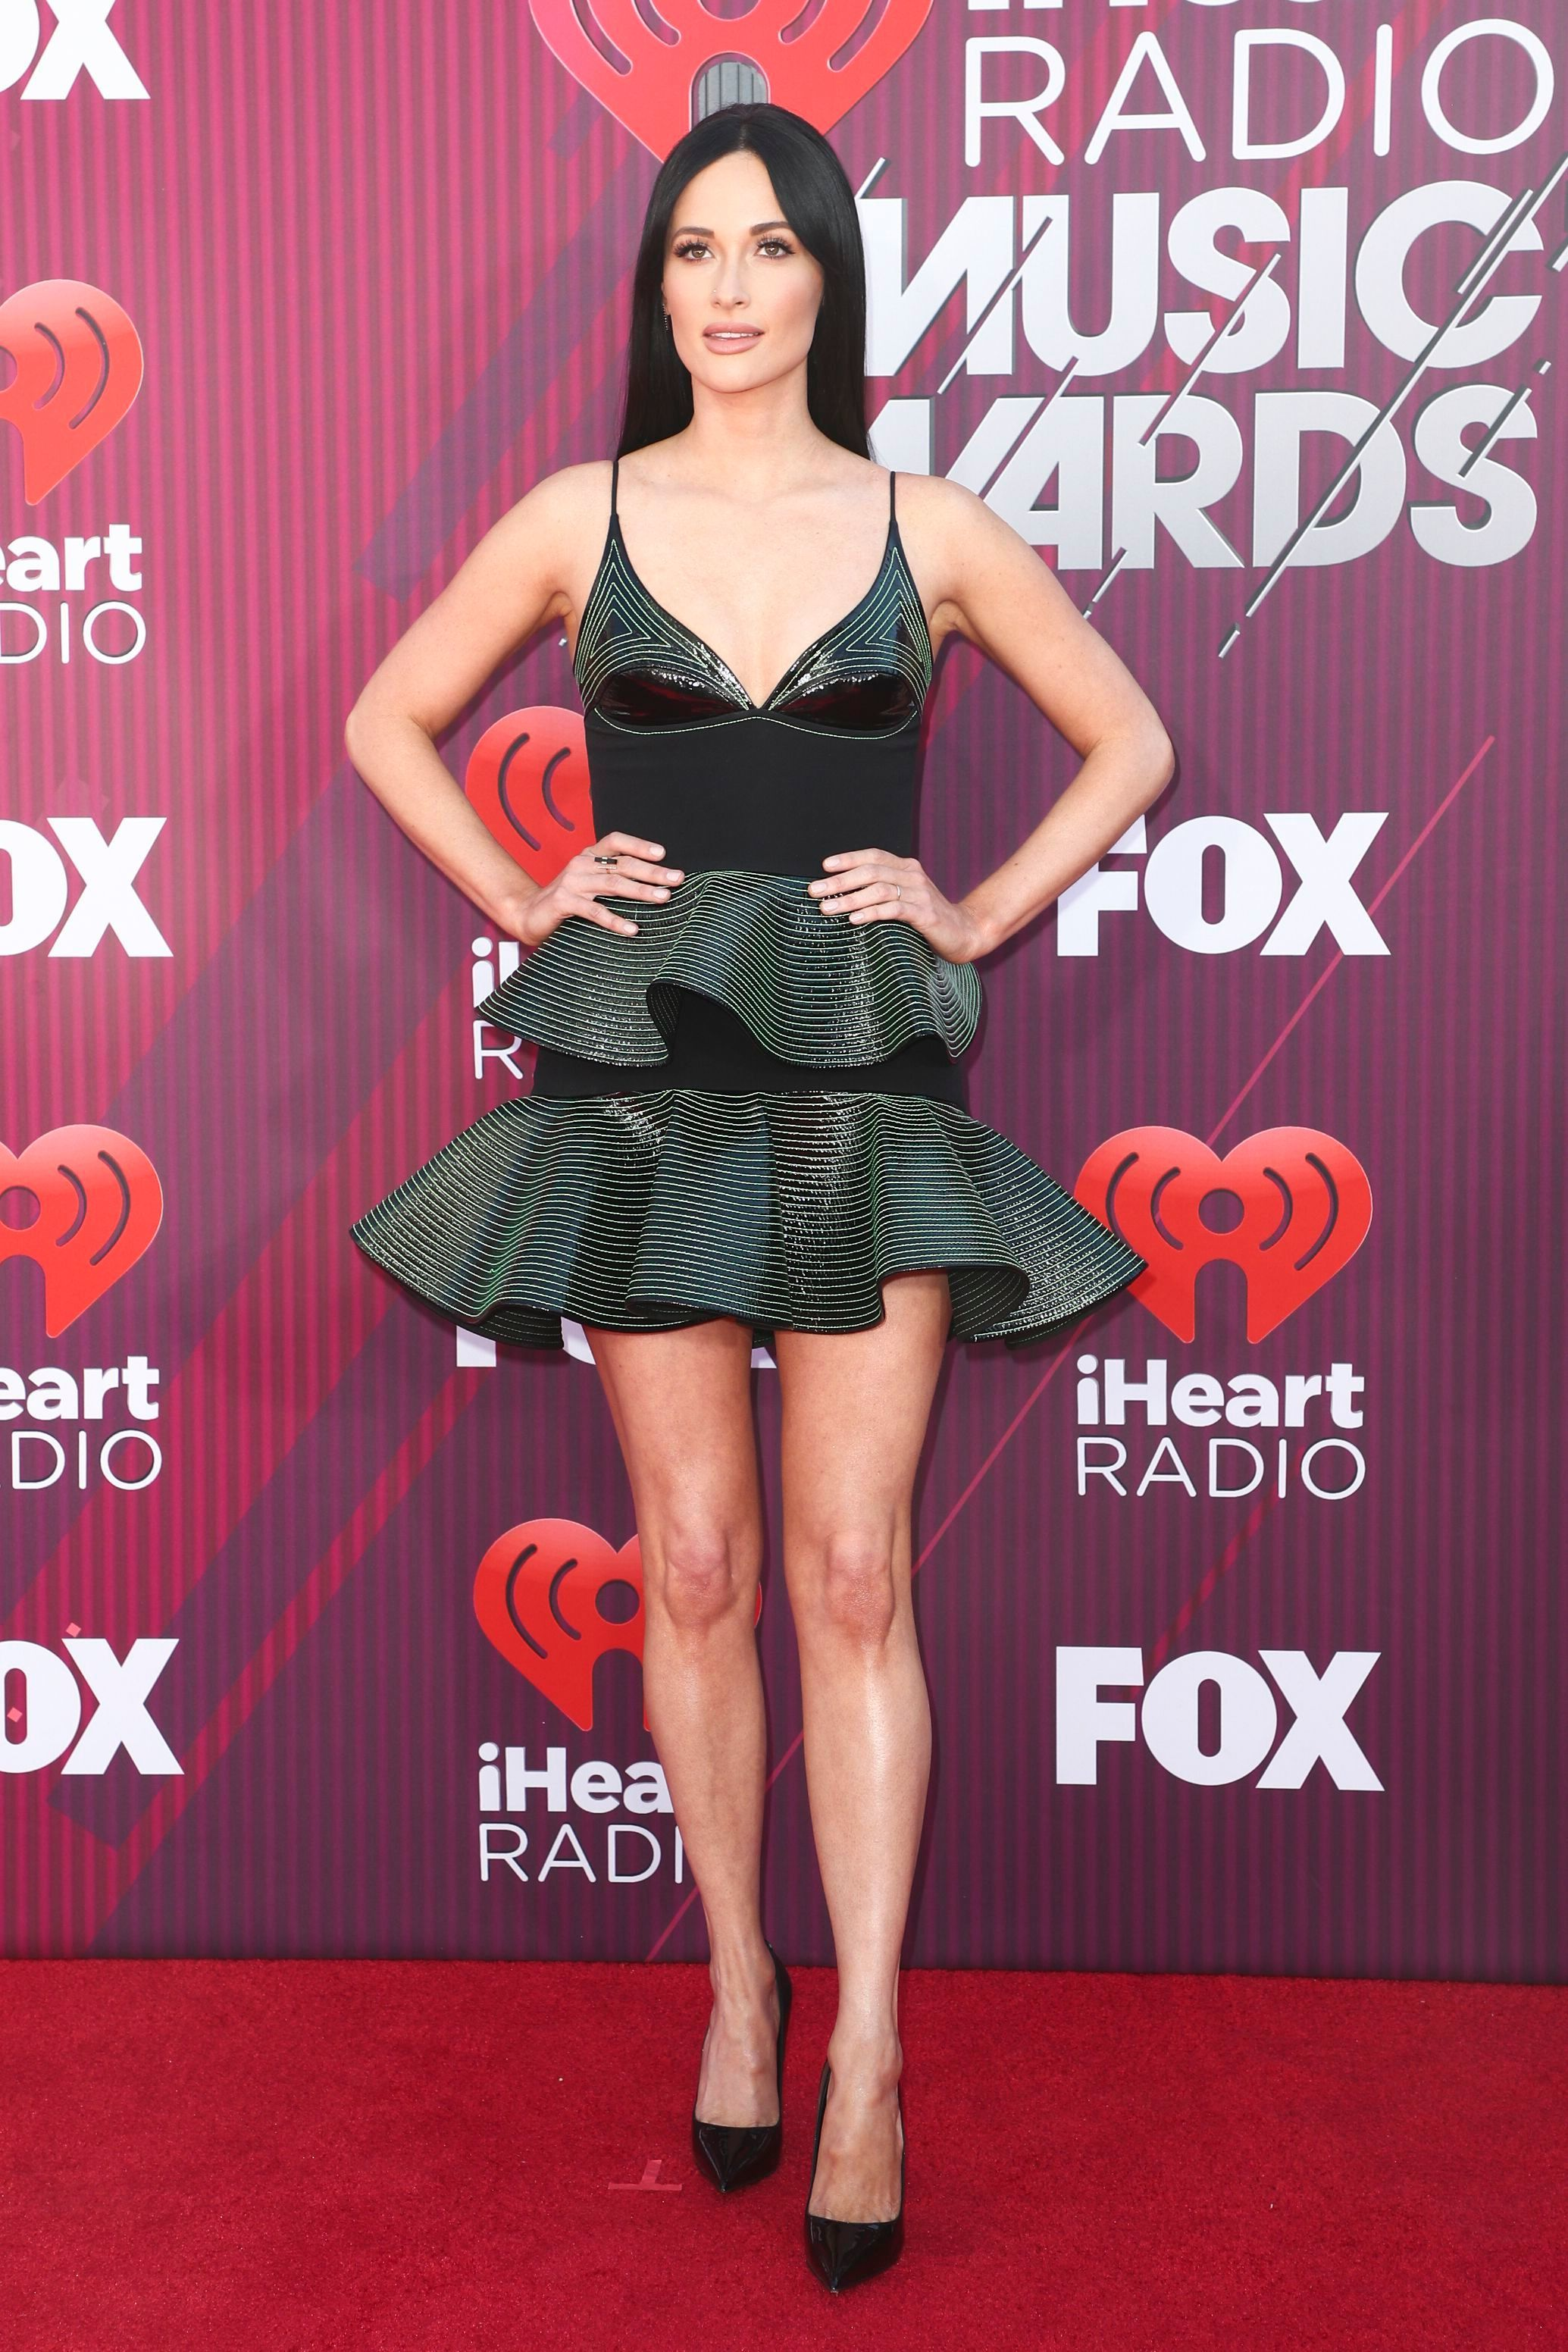 2019 iHeart Radio Music Awards: See all the red carpet pics